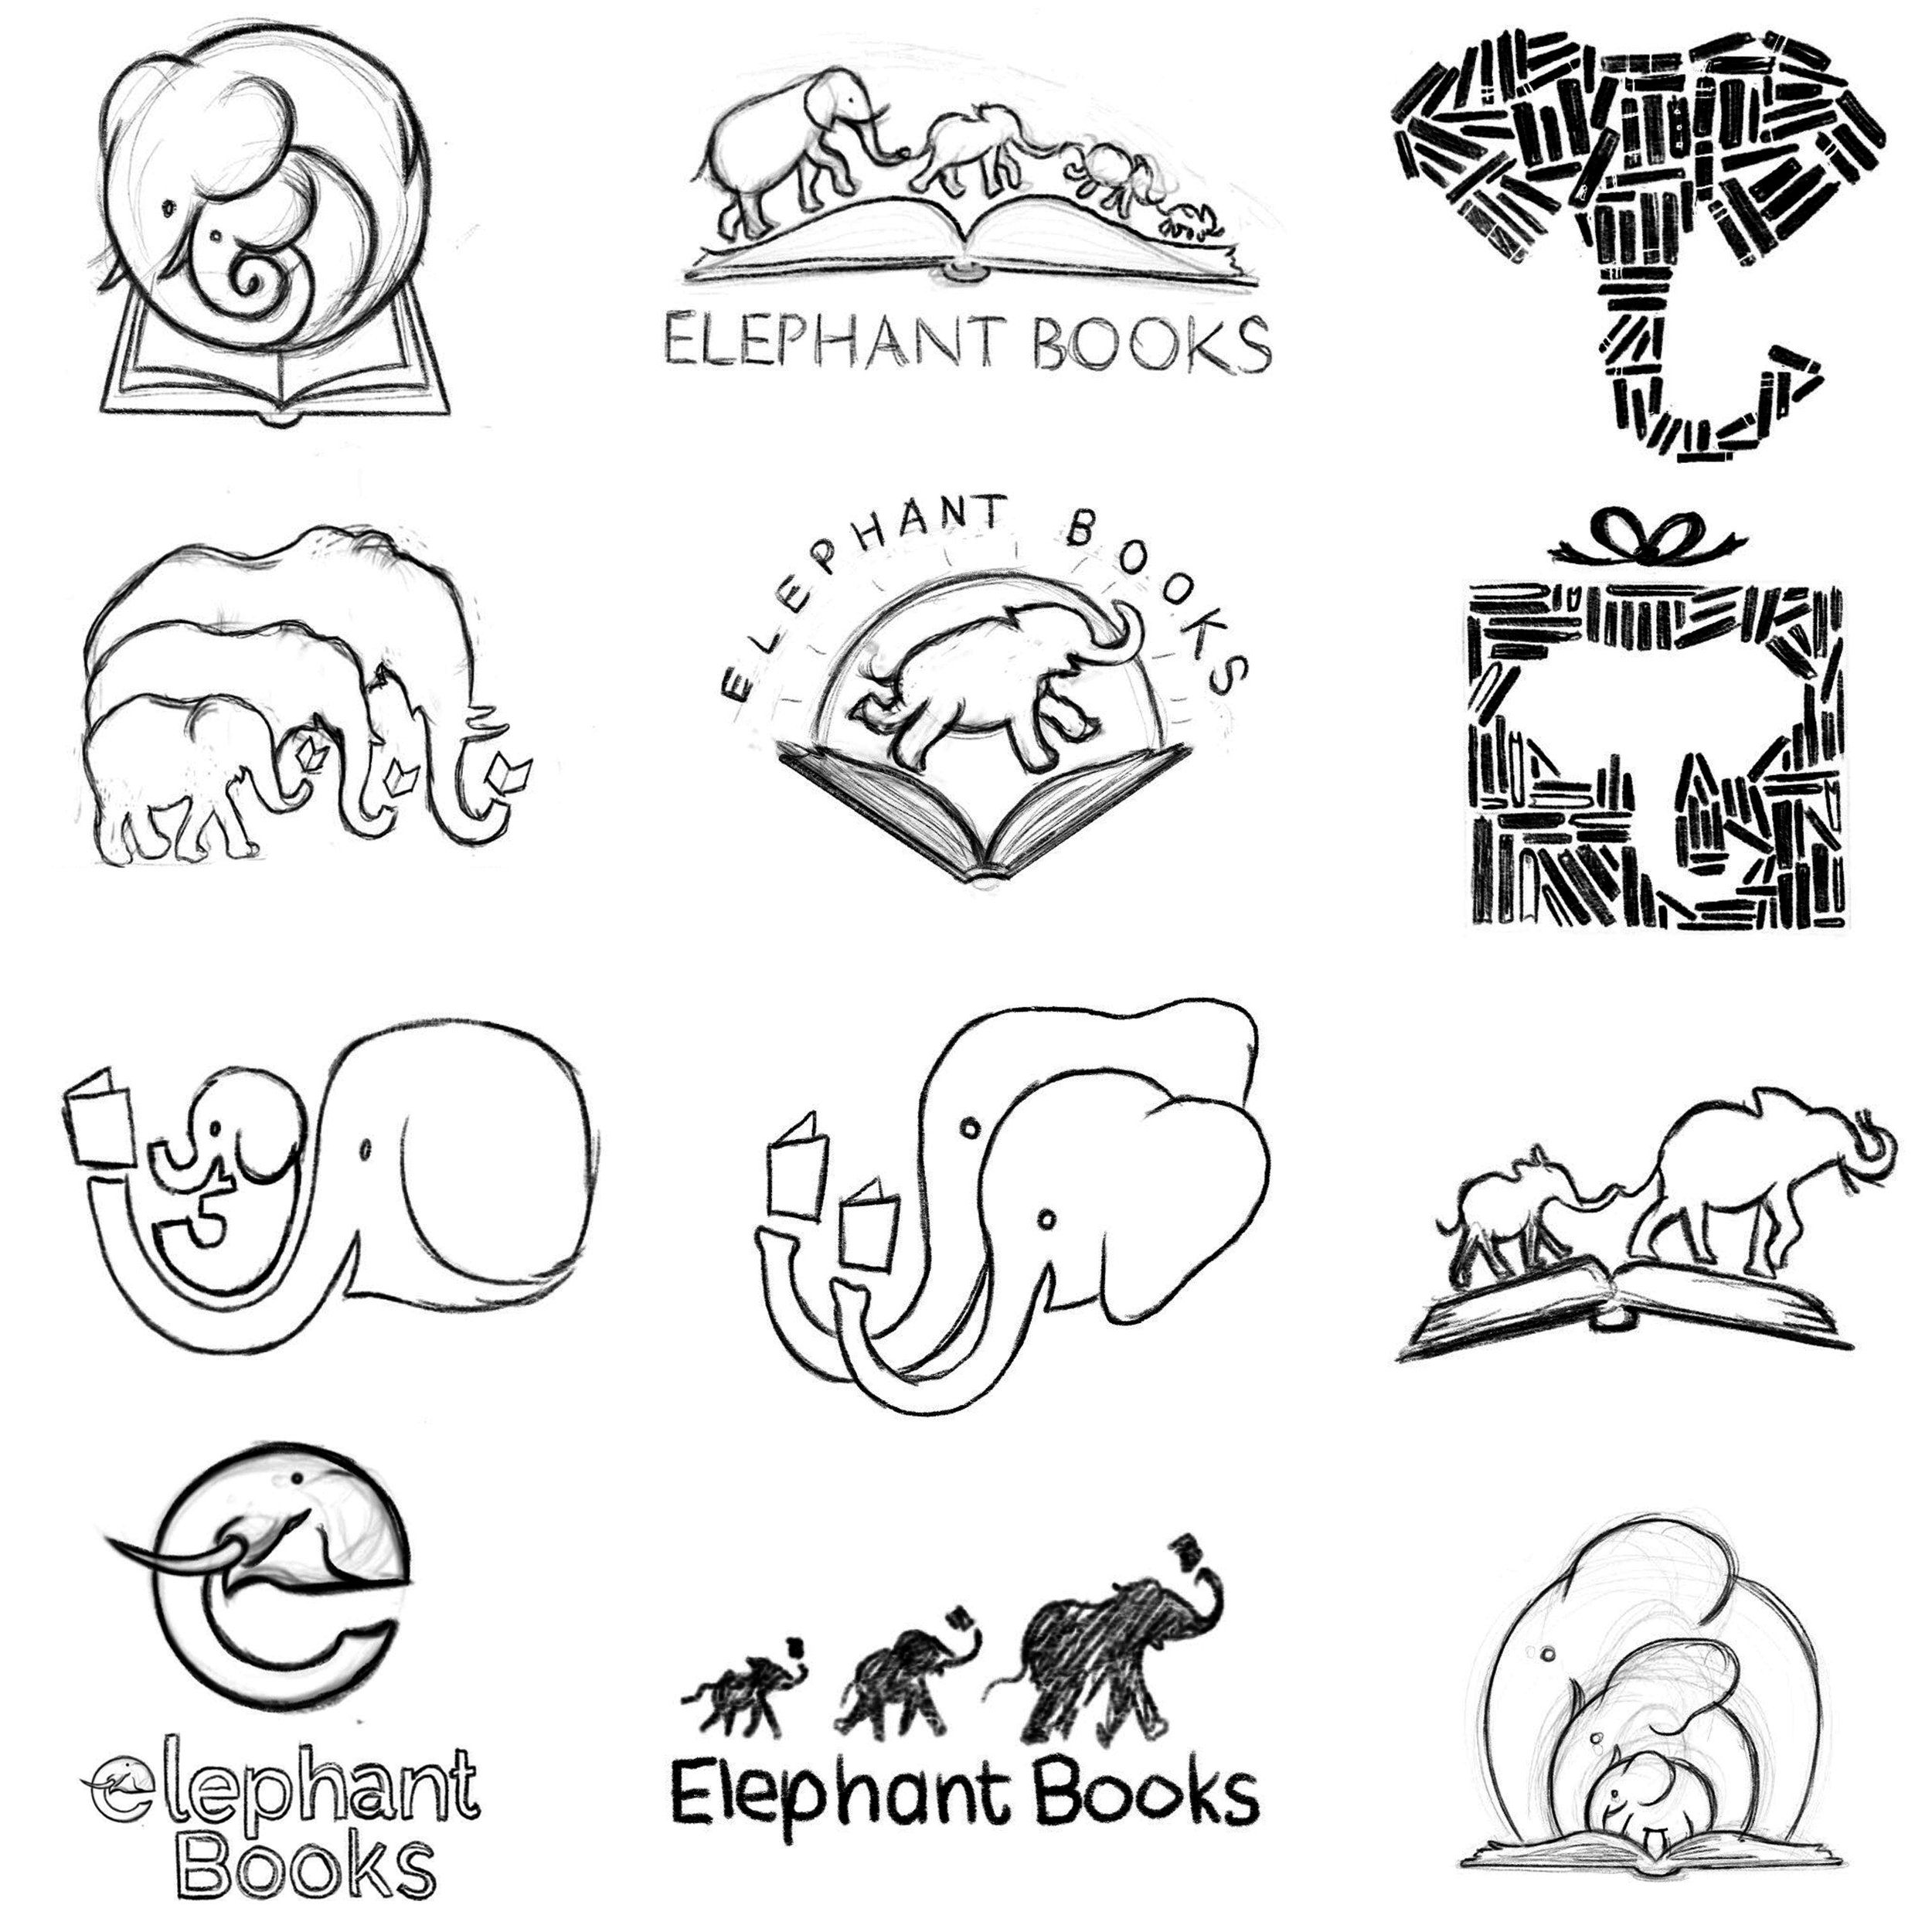 ElephantBooks_PreliminarySketches copy.jpg